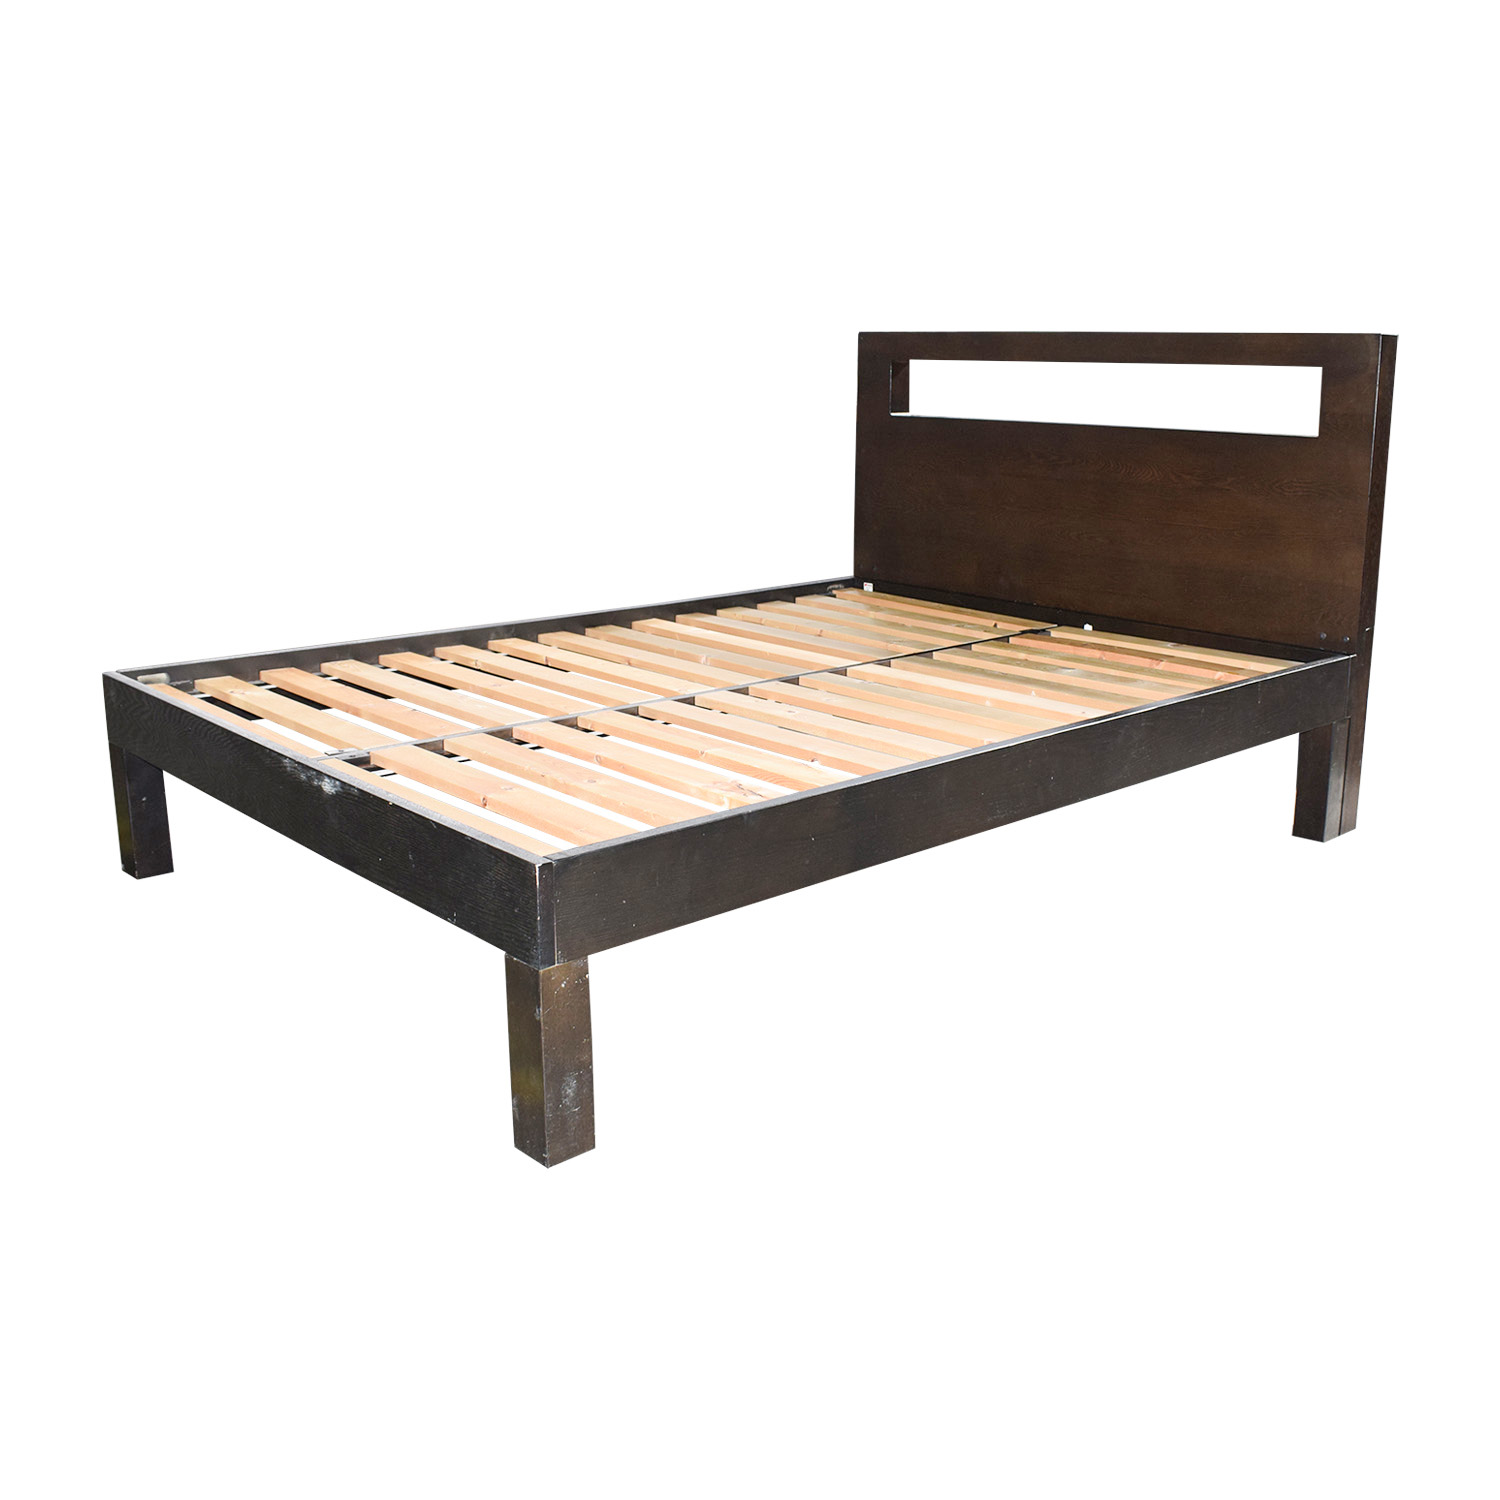 48% OFF - West Elm West Elm Wood Full Bed Frame / Beds